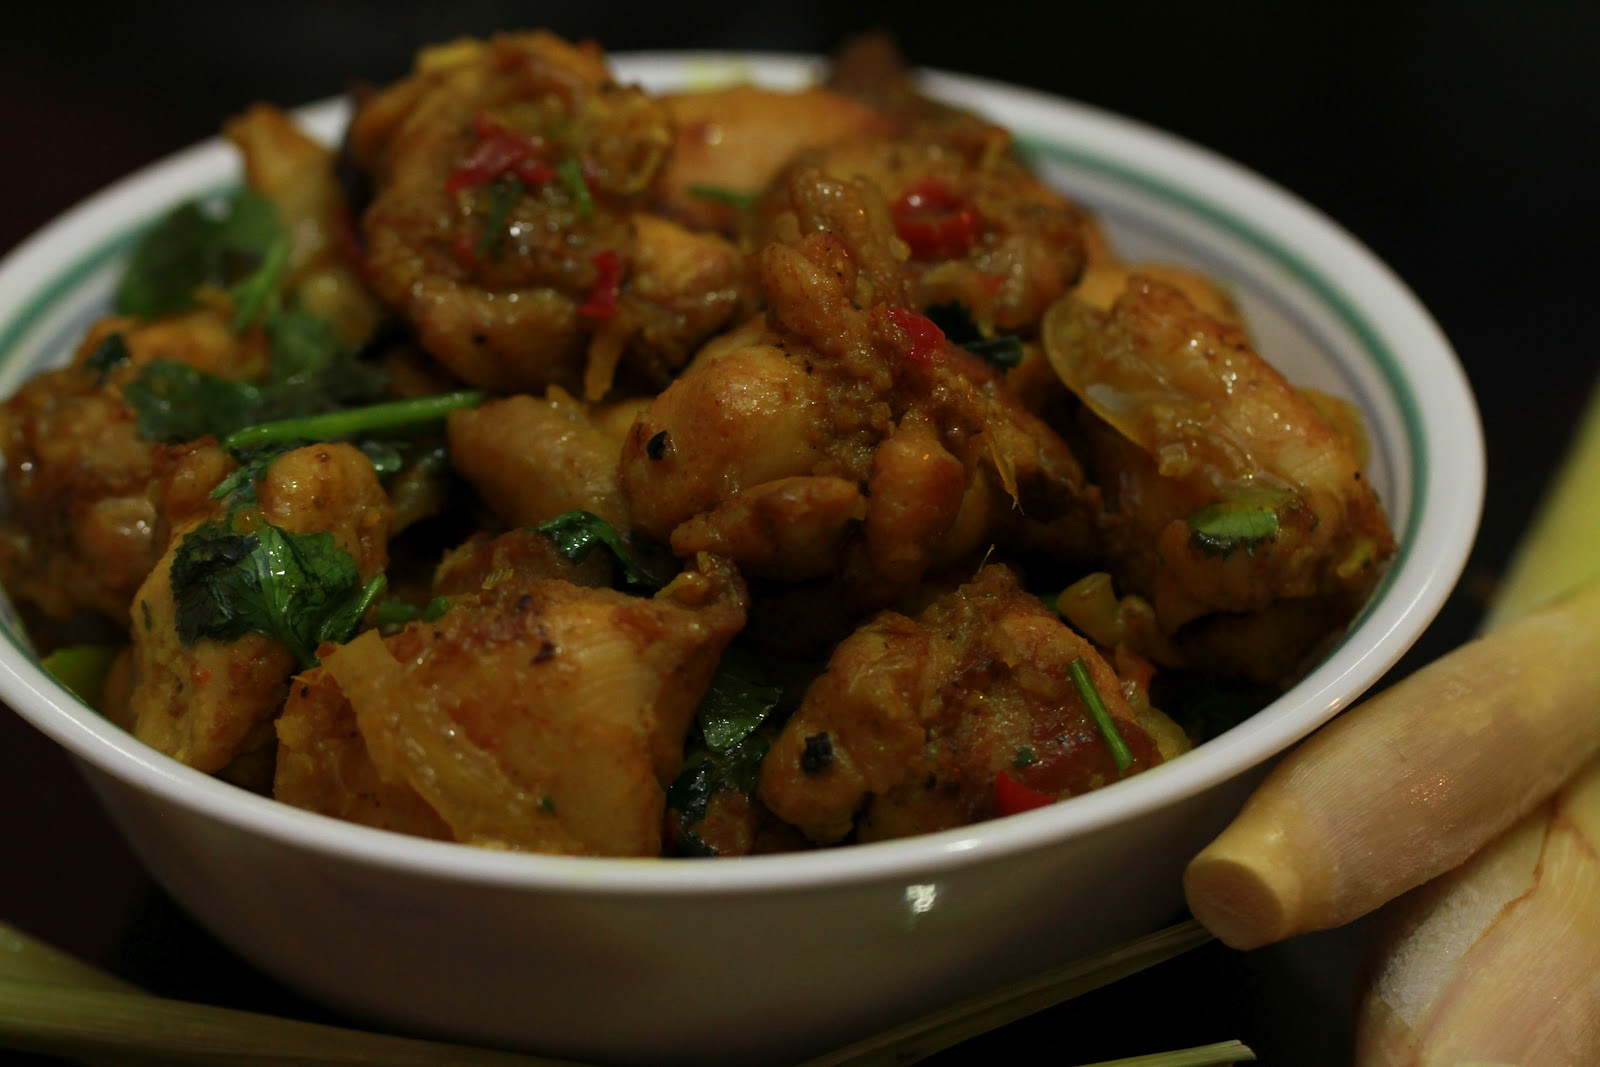 Chicken Stir Fry with Lemongrass,Turmeric and Chilies- Ga Xao voi Xa ...